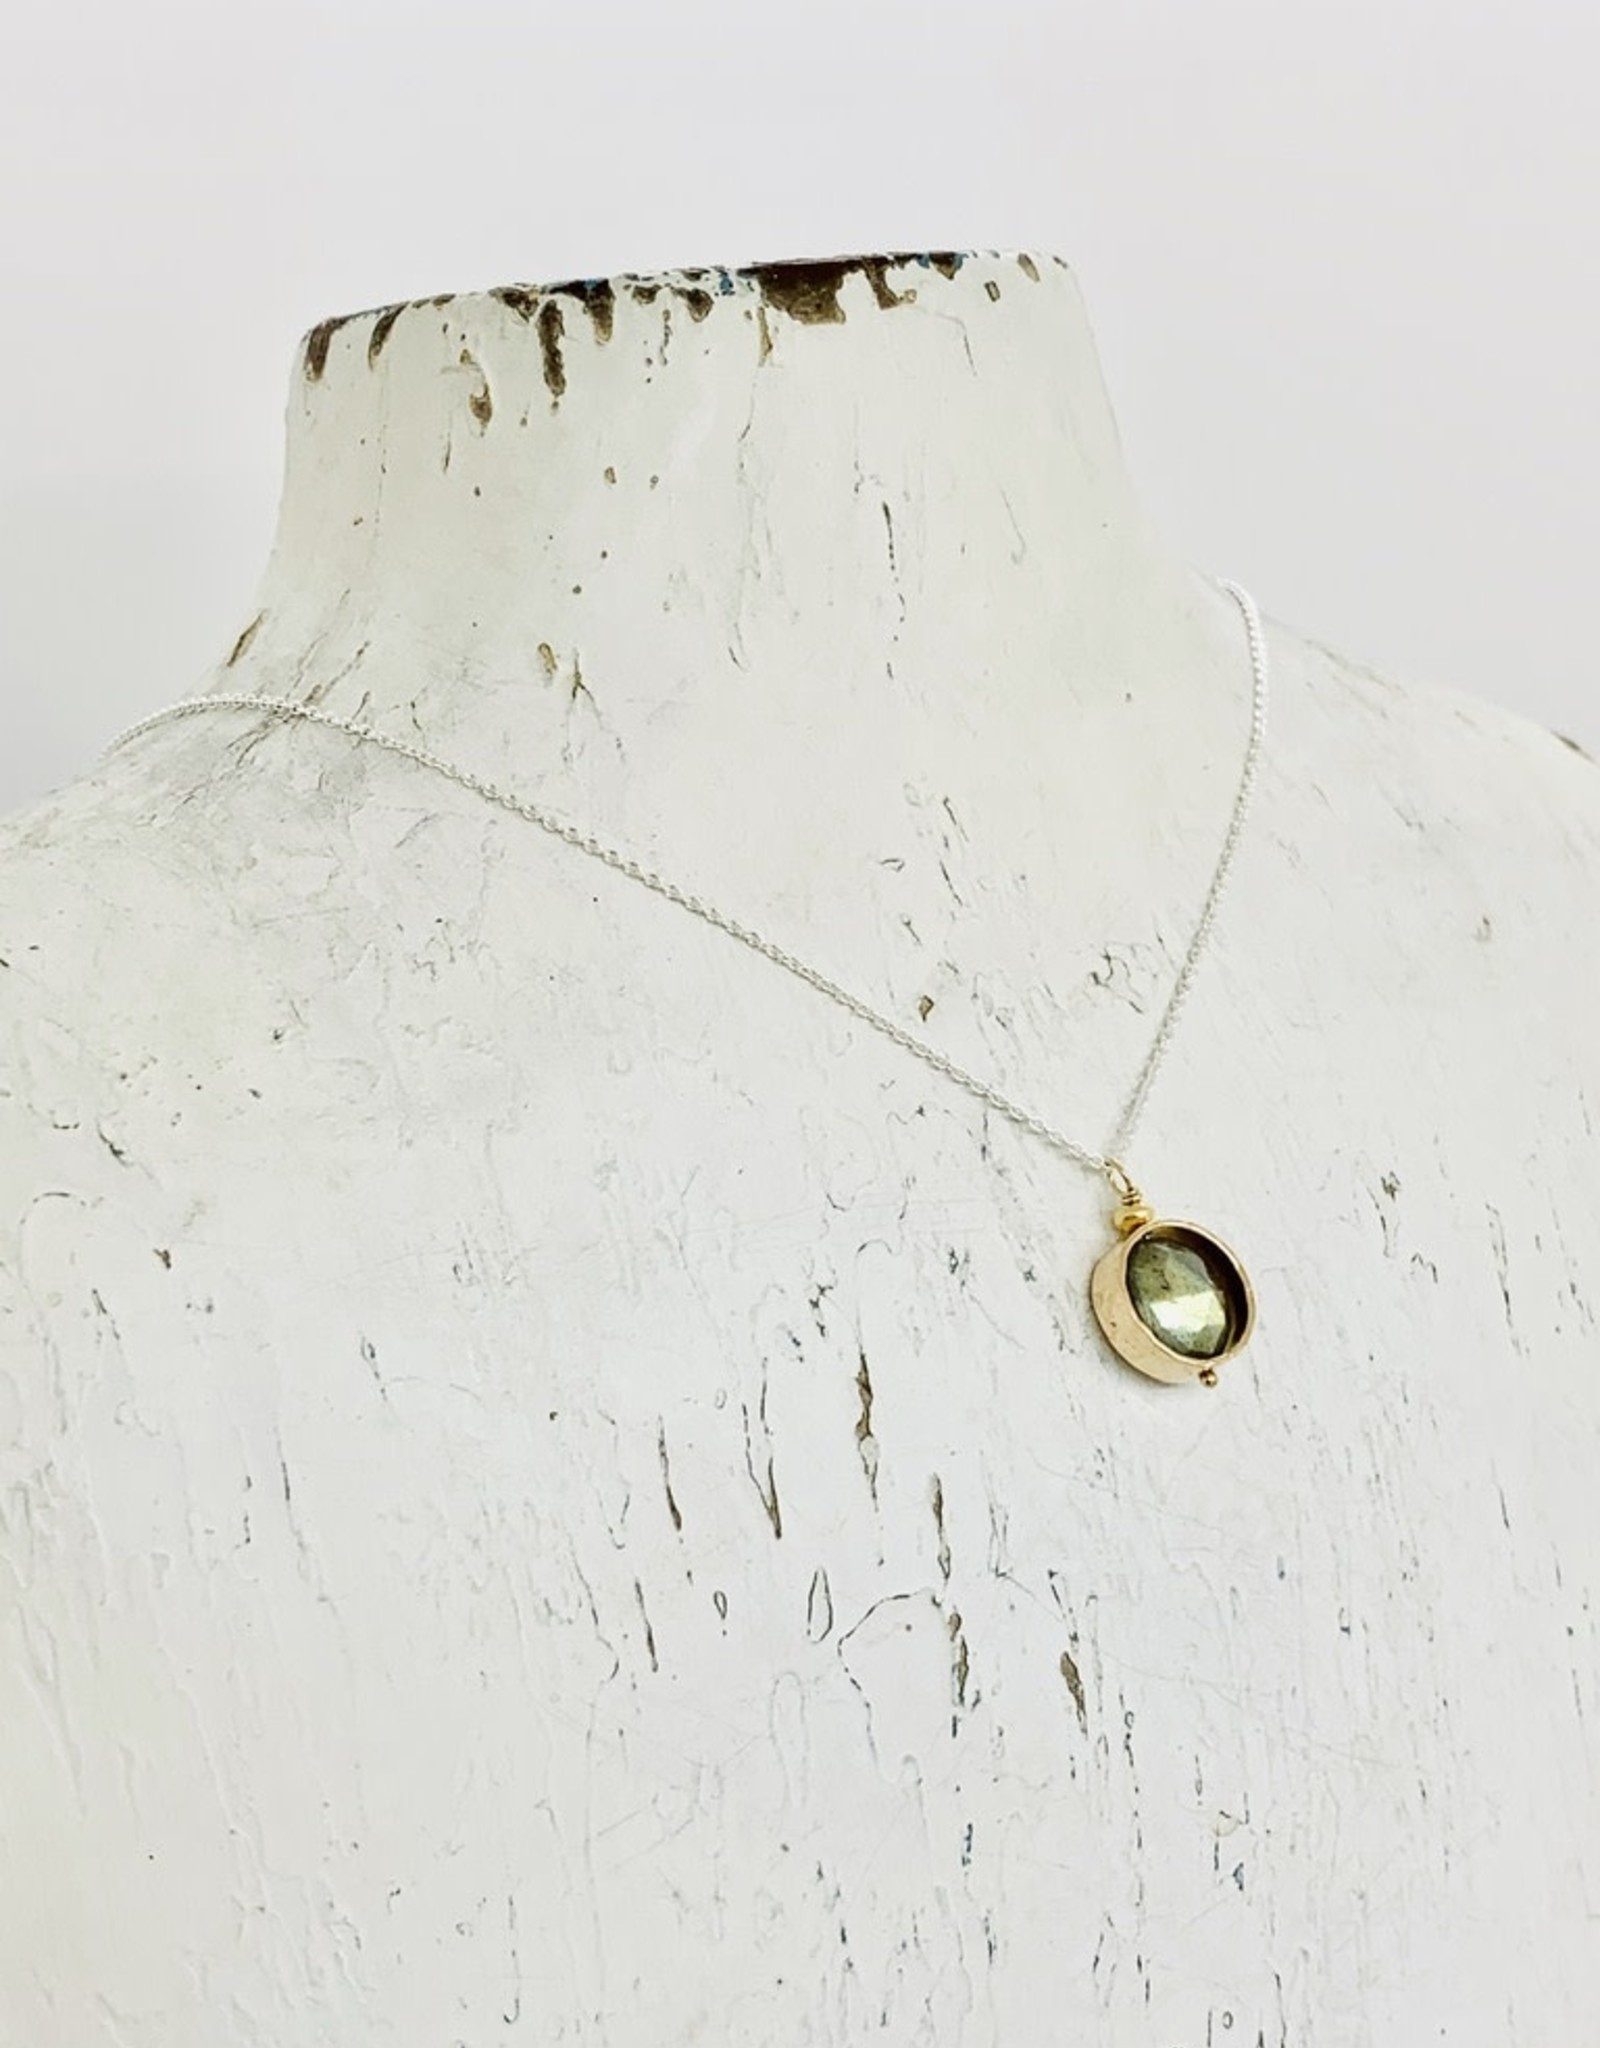 J&I Handmade Necklace with 8mm Faceted Labradorite Coin in 14k Gold Filled Circle on Sterling Chain